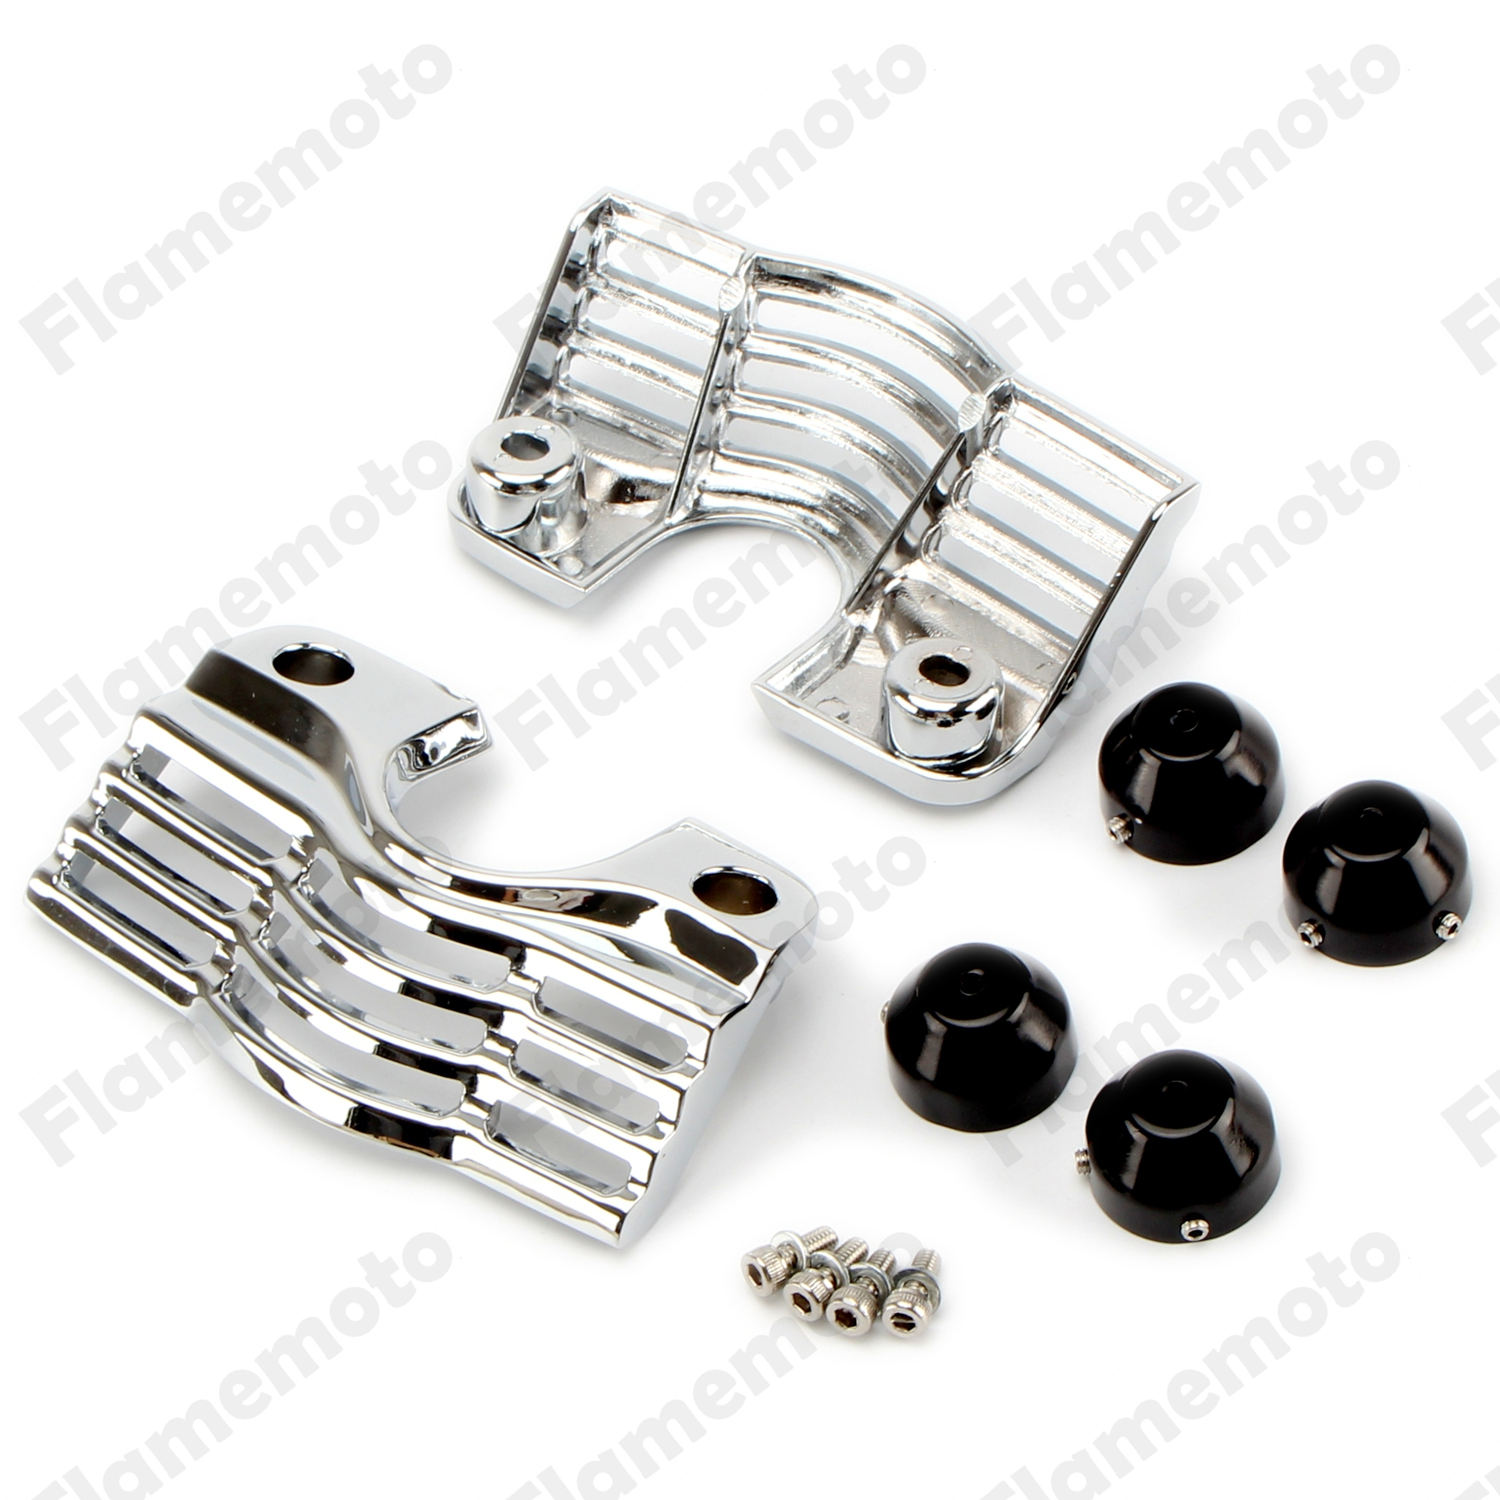 ФОТО Motorbike Parts Chrome Finned Spark Slotted Plug Head Bolt Covers For Harley Trikes Road King